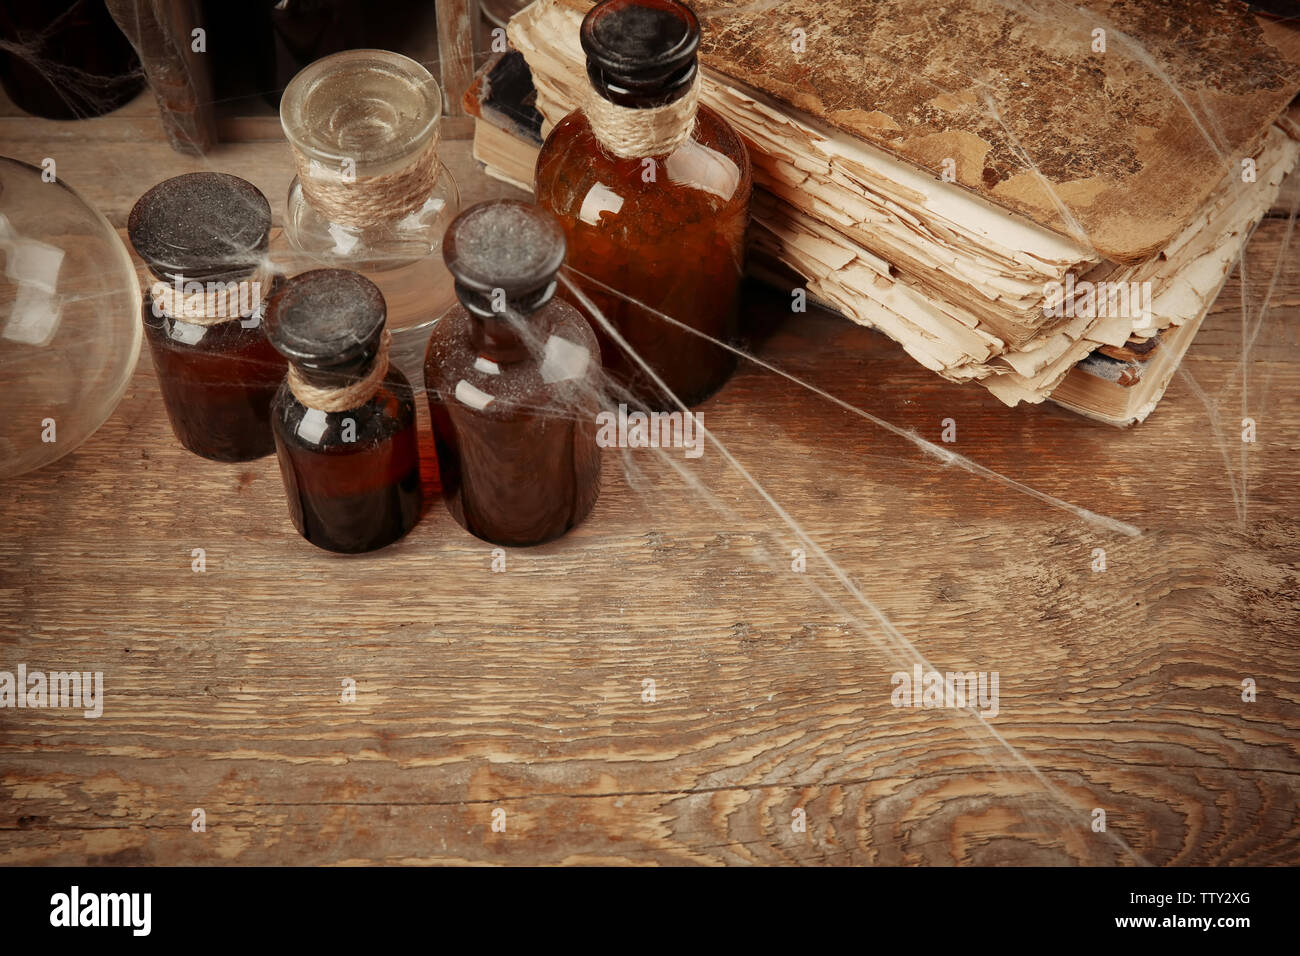 Vintage glass bottles and old books with spiderweb on wooden background, closeup - Stock Image